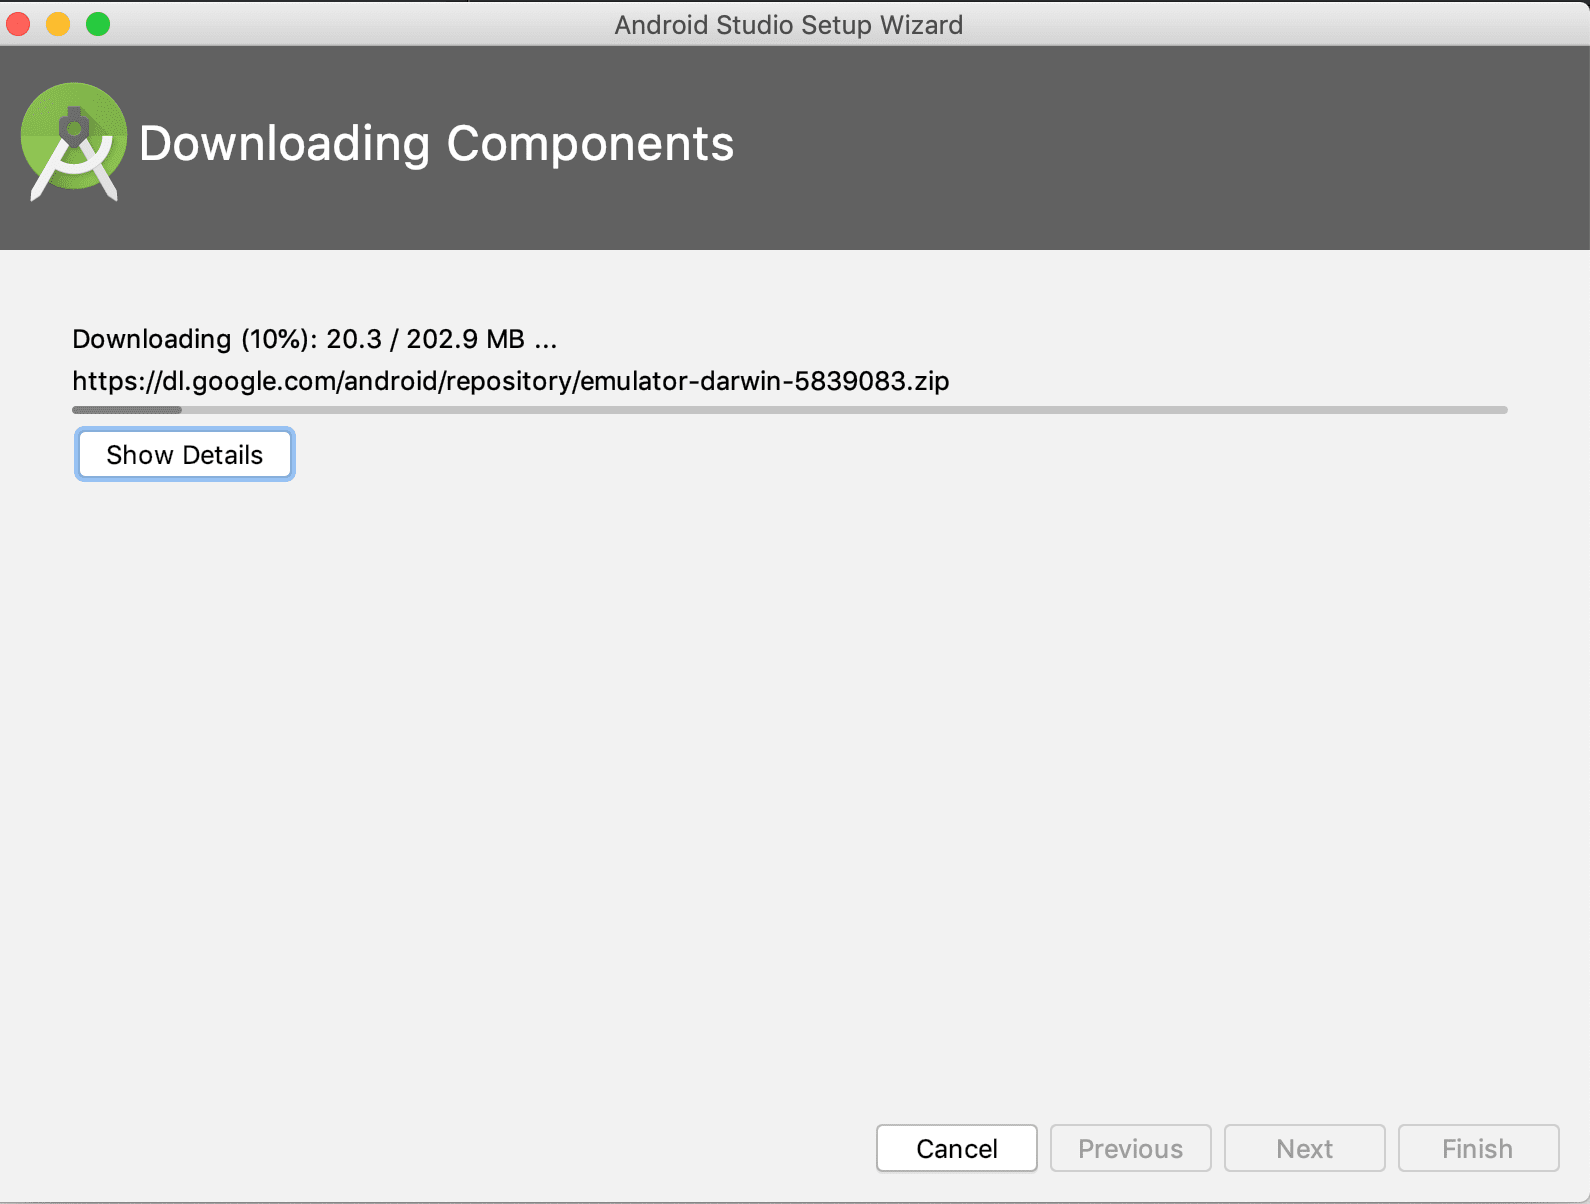 screenshot of Android Studio Downloading Components screen